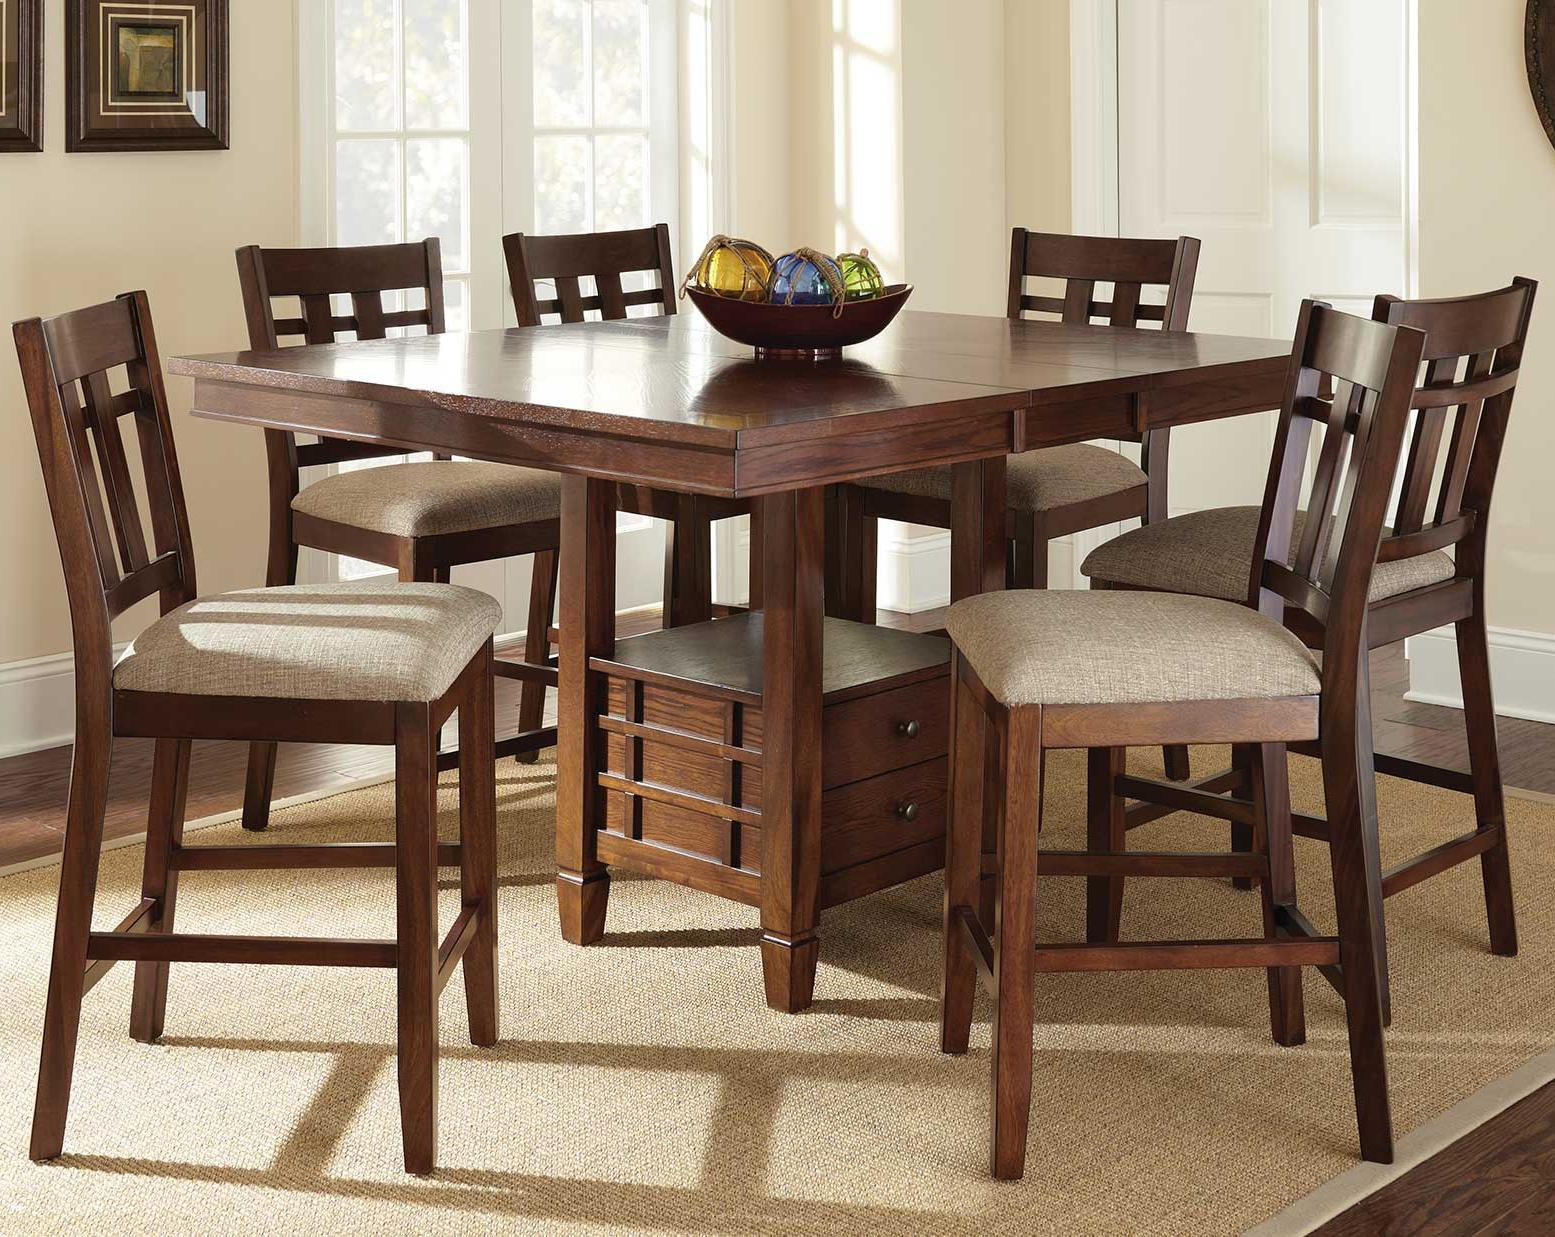 high top kitchen table set pfister faucet repair steve silver bolton 7 piece counter height dining with storage